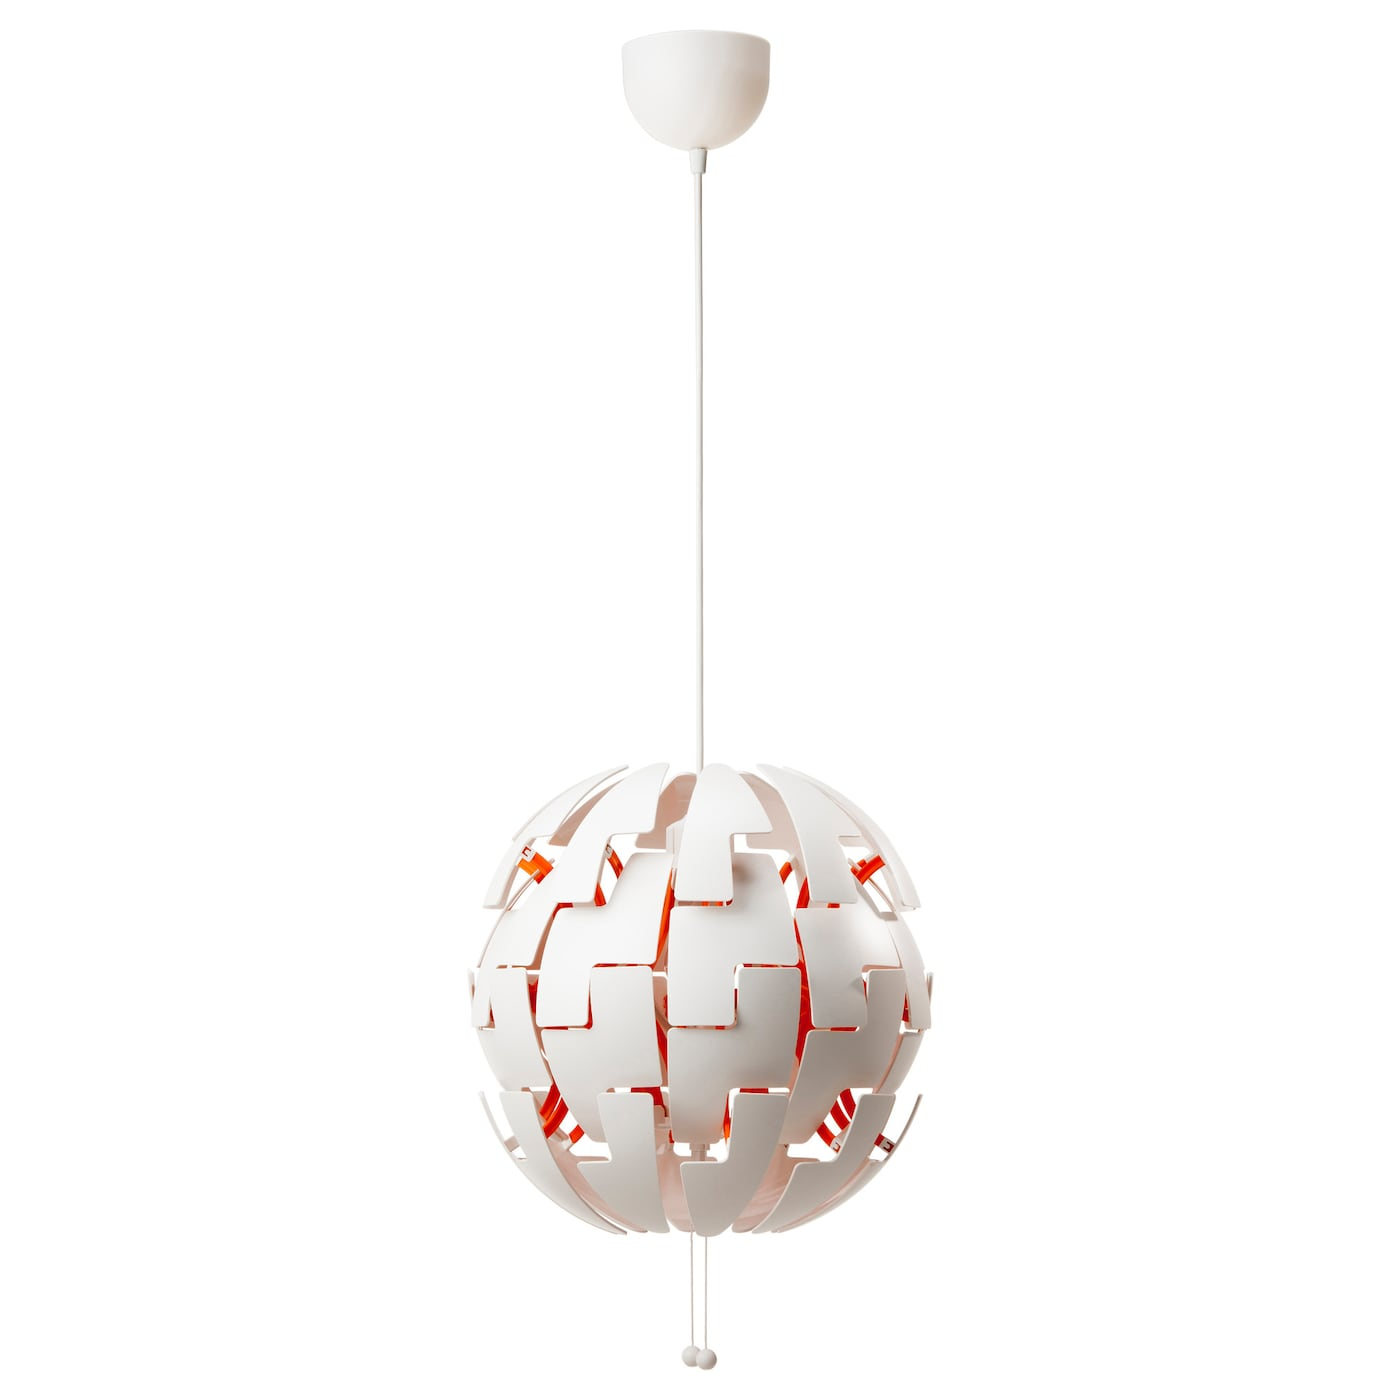 IKEA PS 2014 Pendant Lamp Gives Decorative Patterns On The Ceiling And Wall